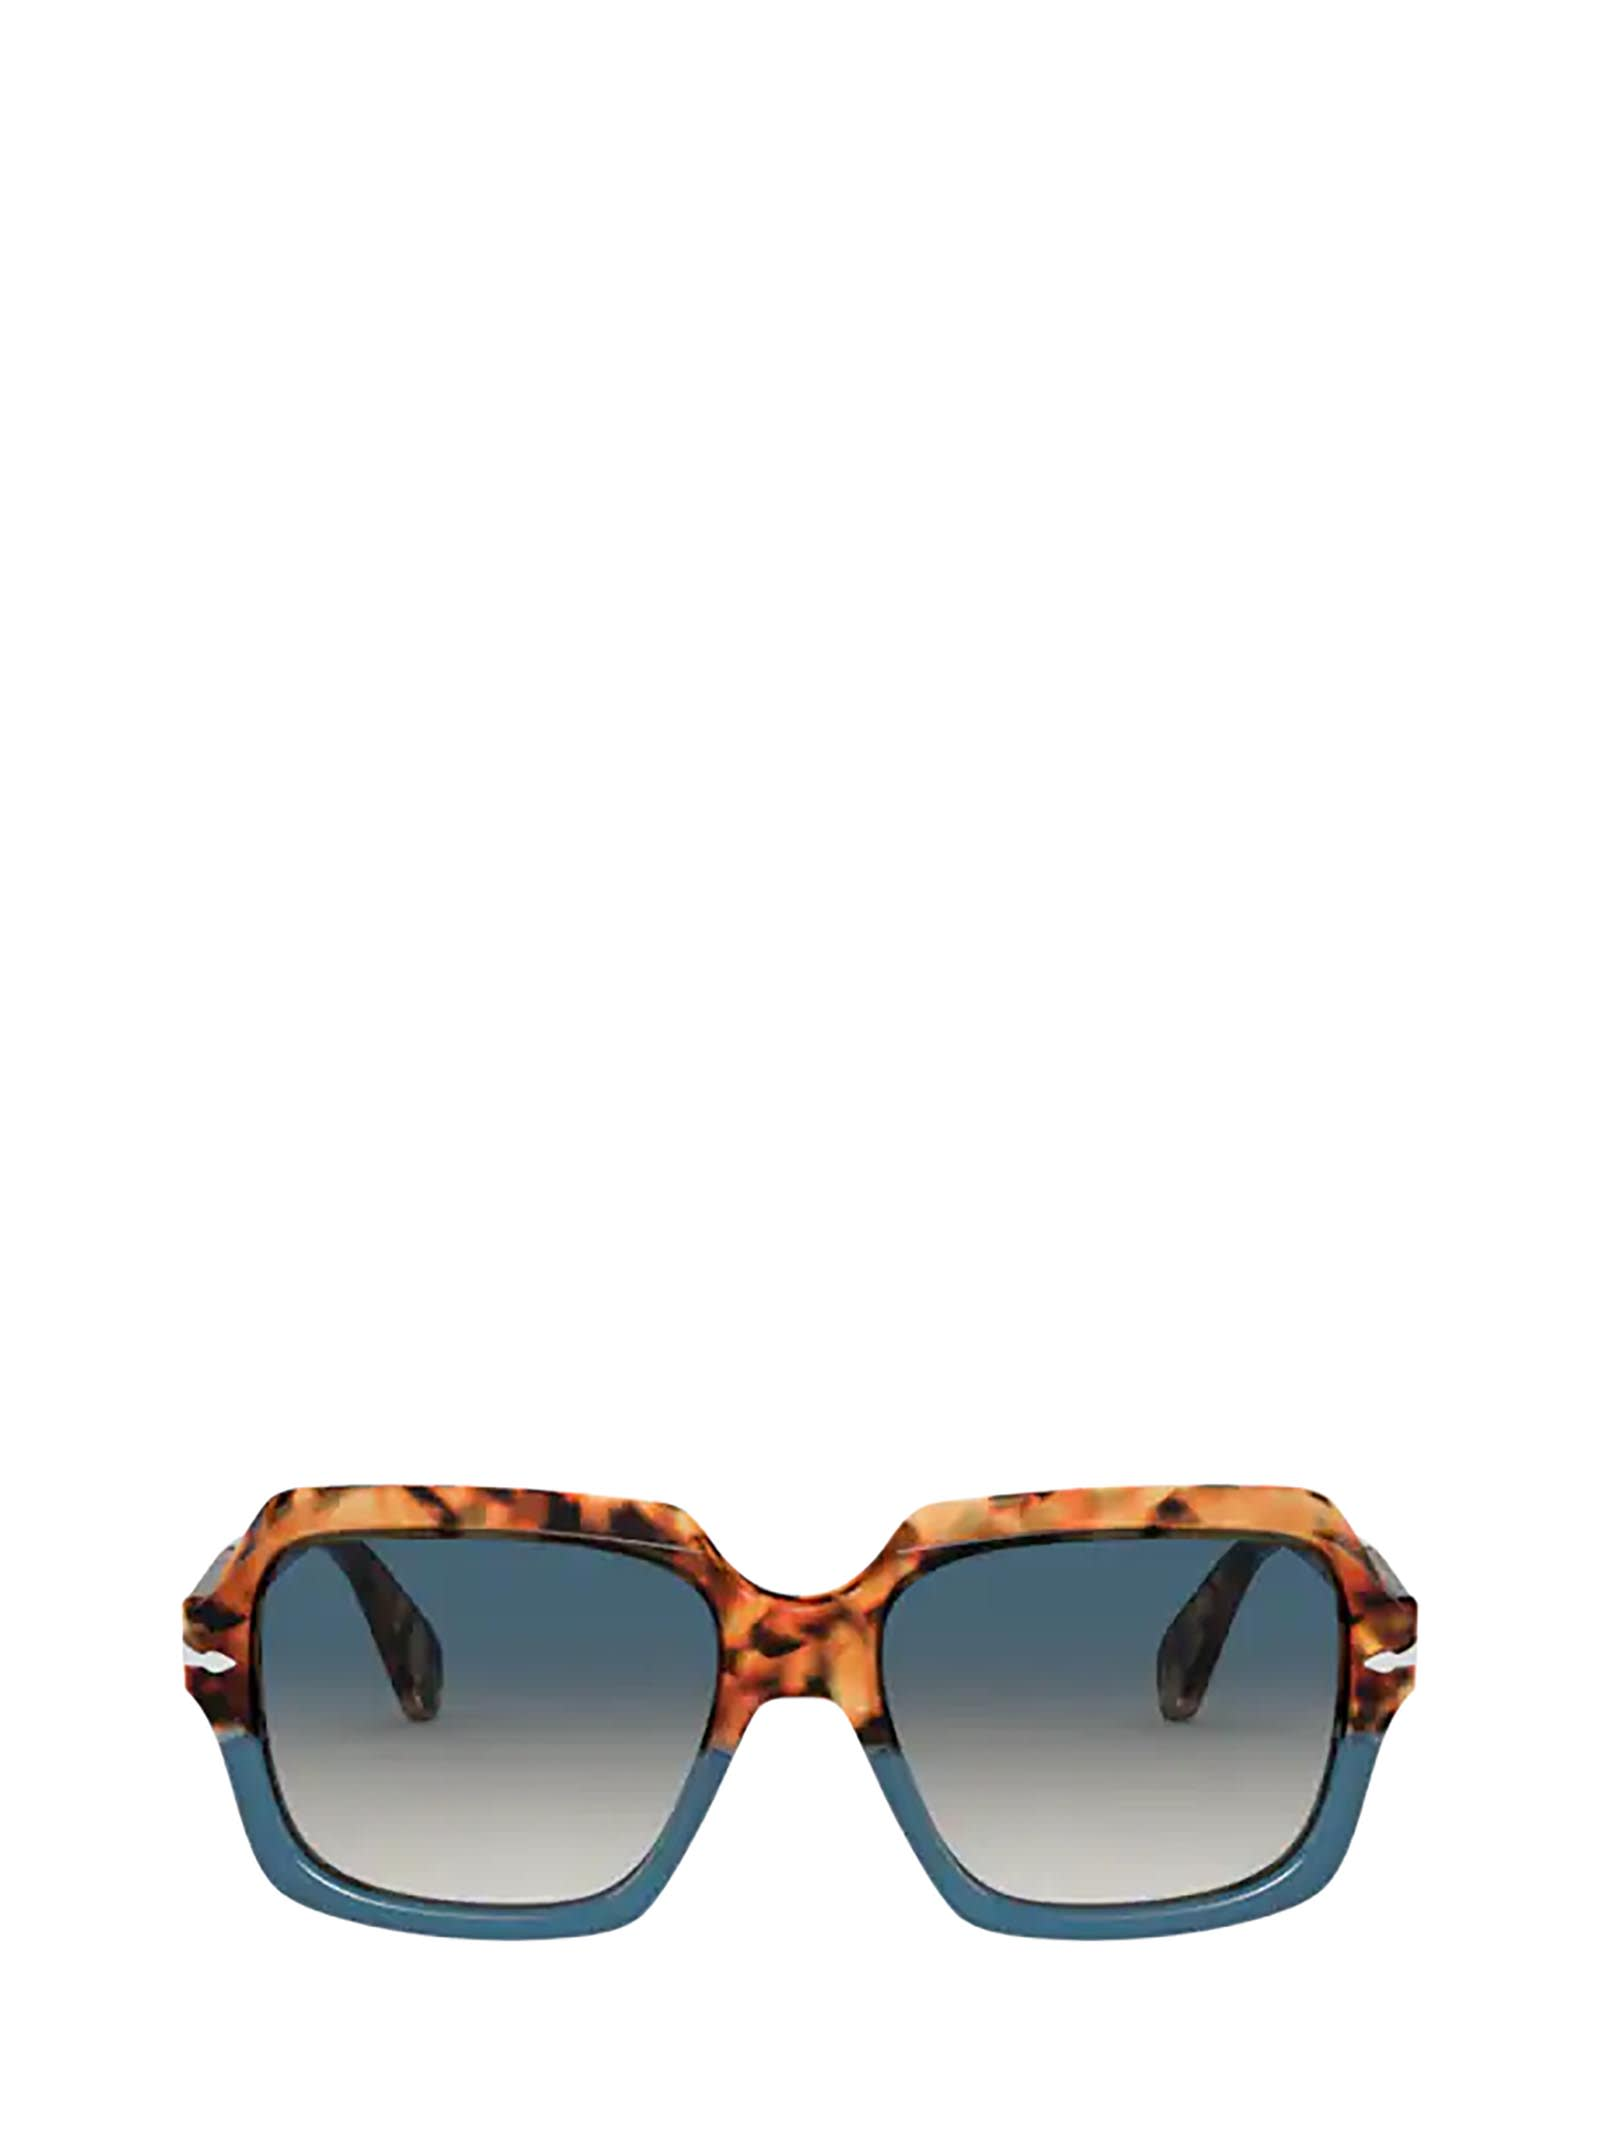 Persol PO0581S YELLOW TORTOISE/BLUE TOP SUNGLASSES